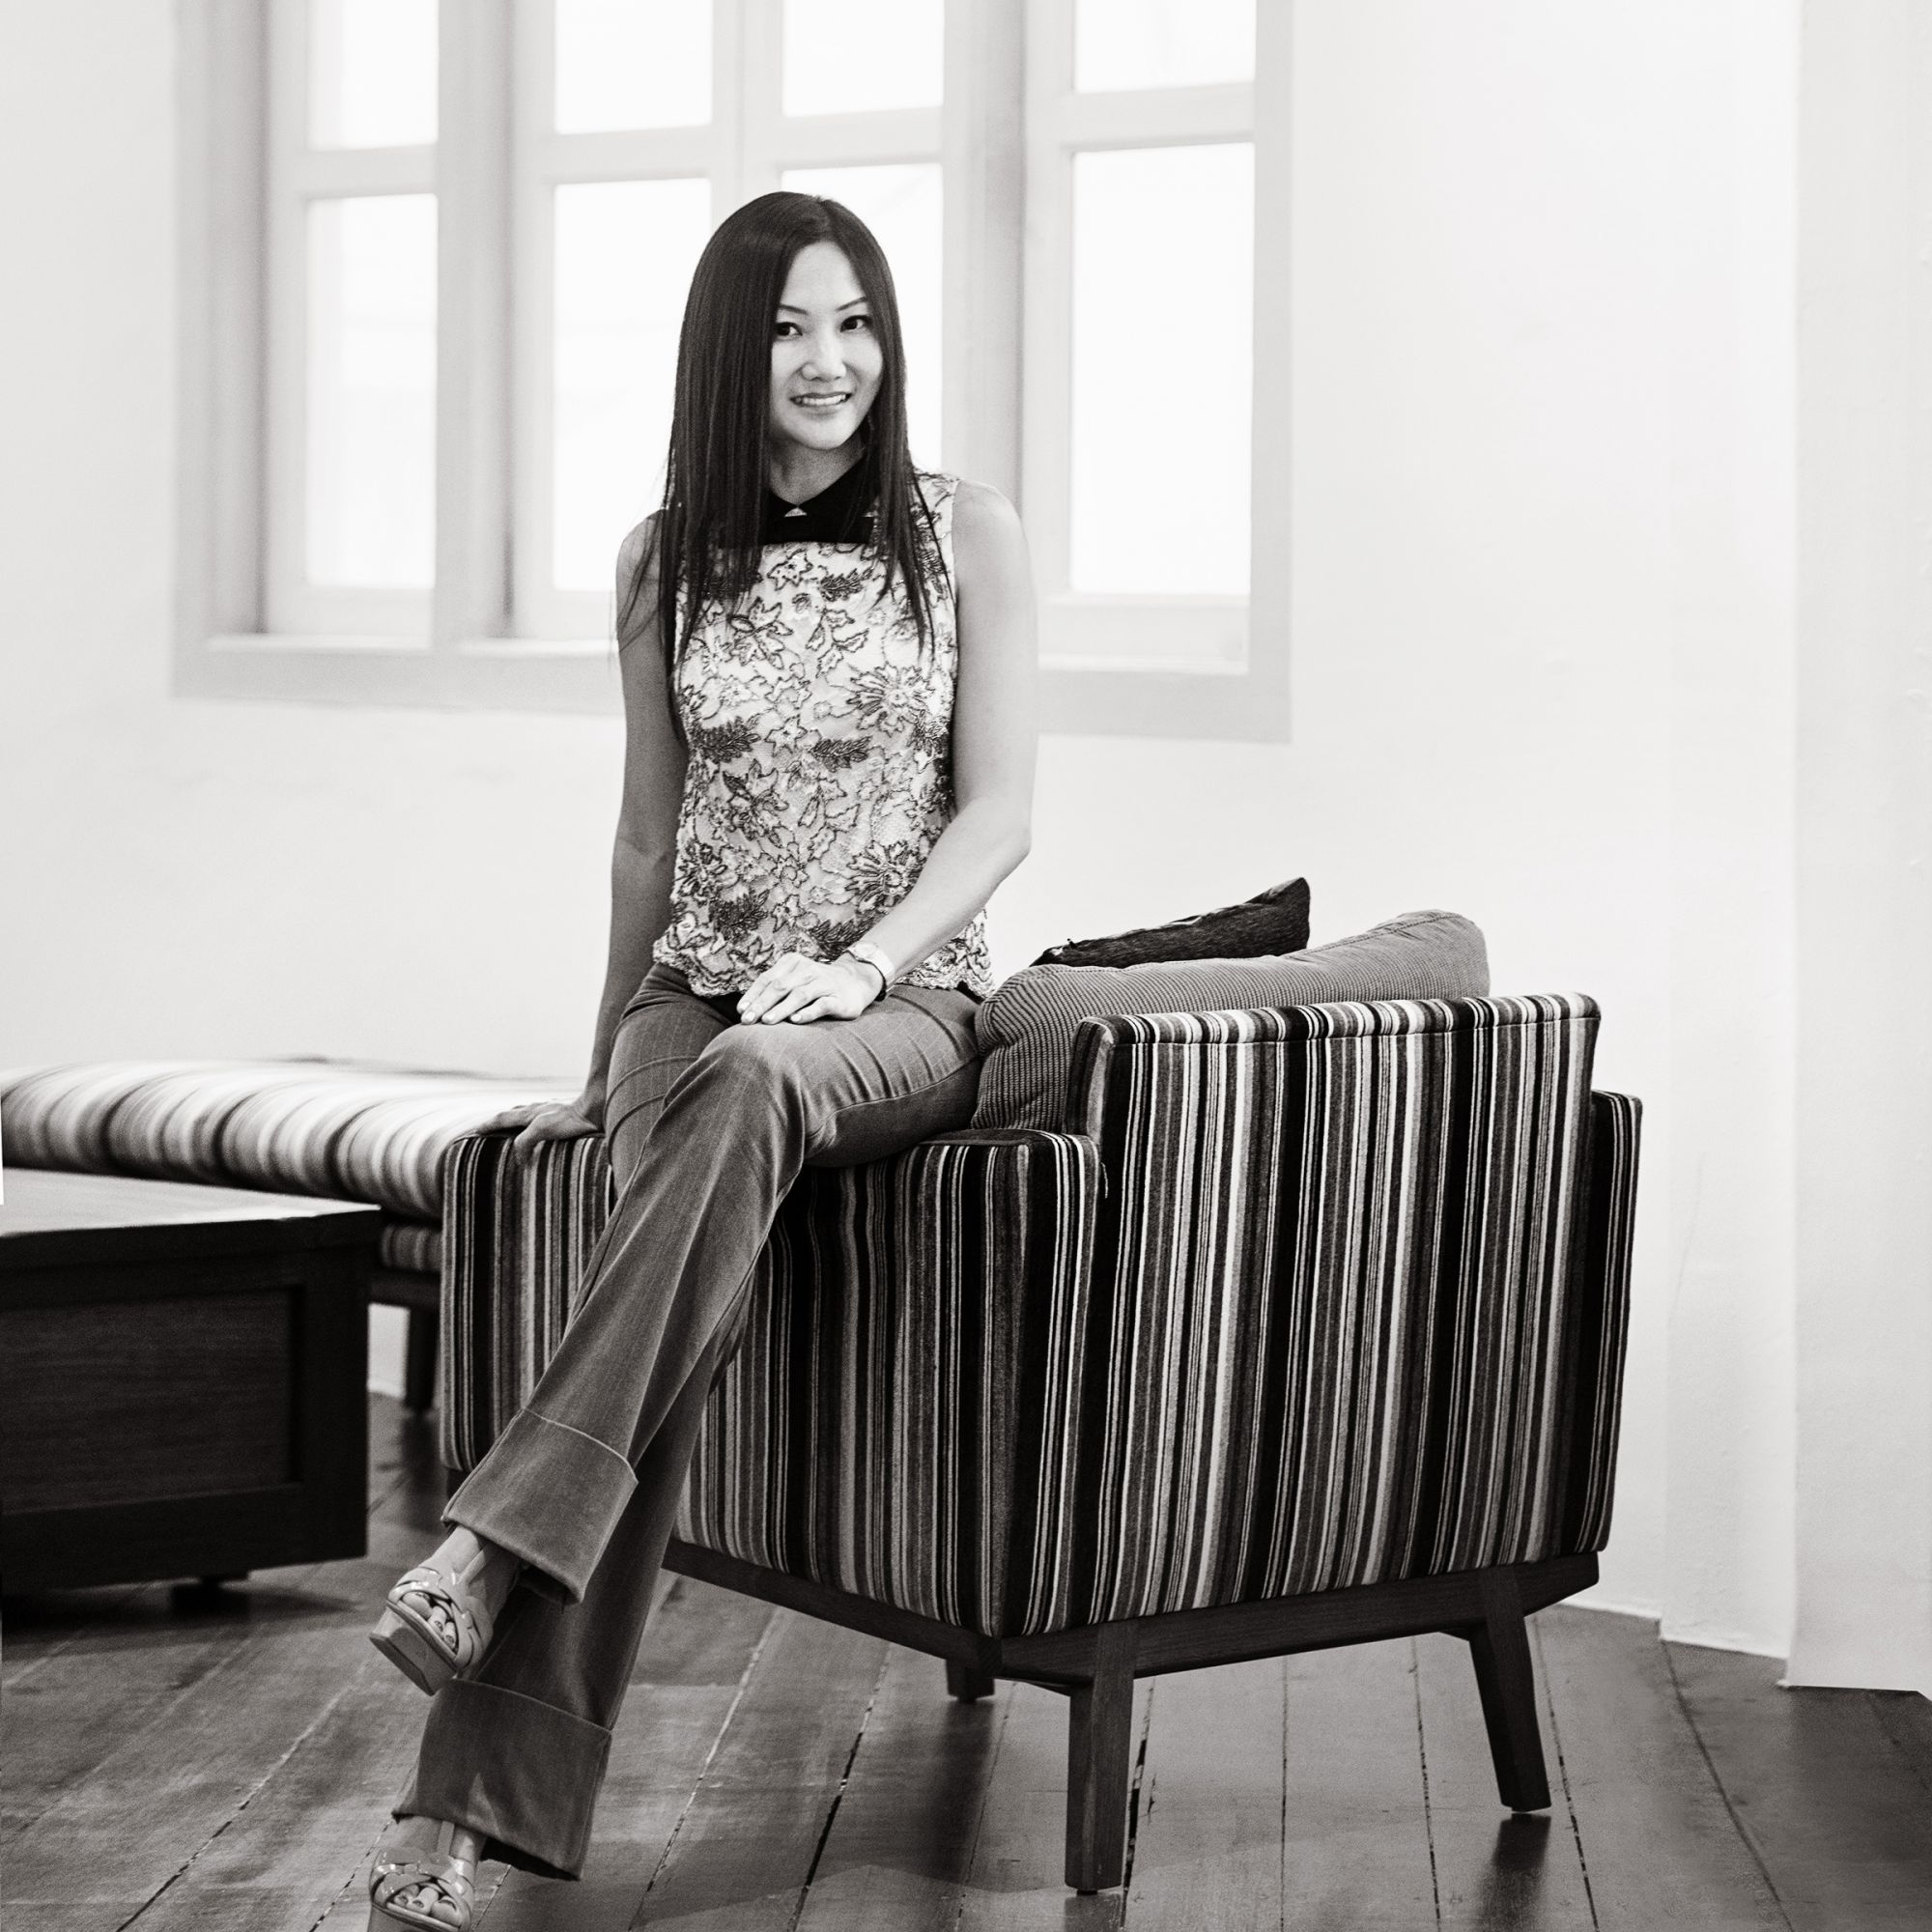 5 Minutes With… Elaine Lim Of White Room Studio